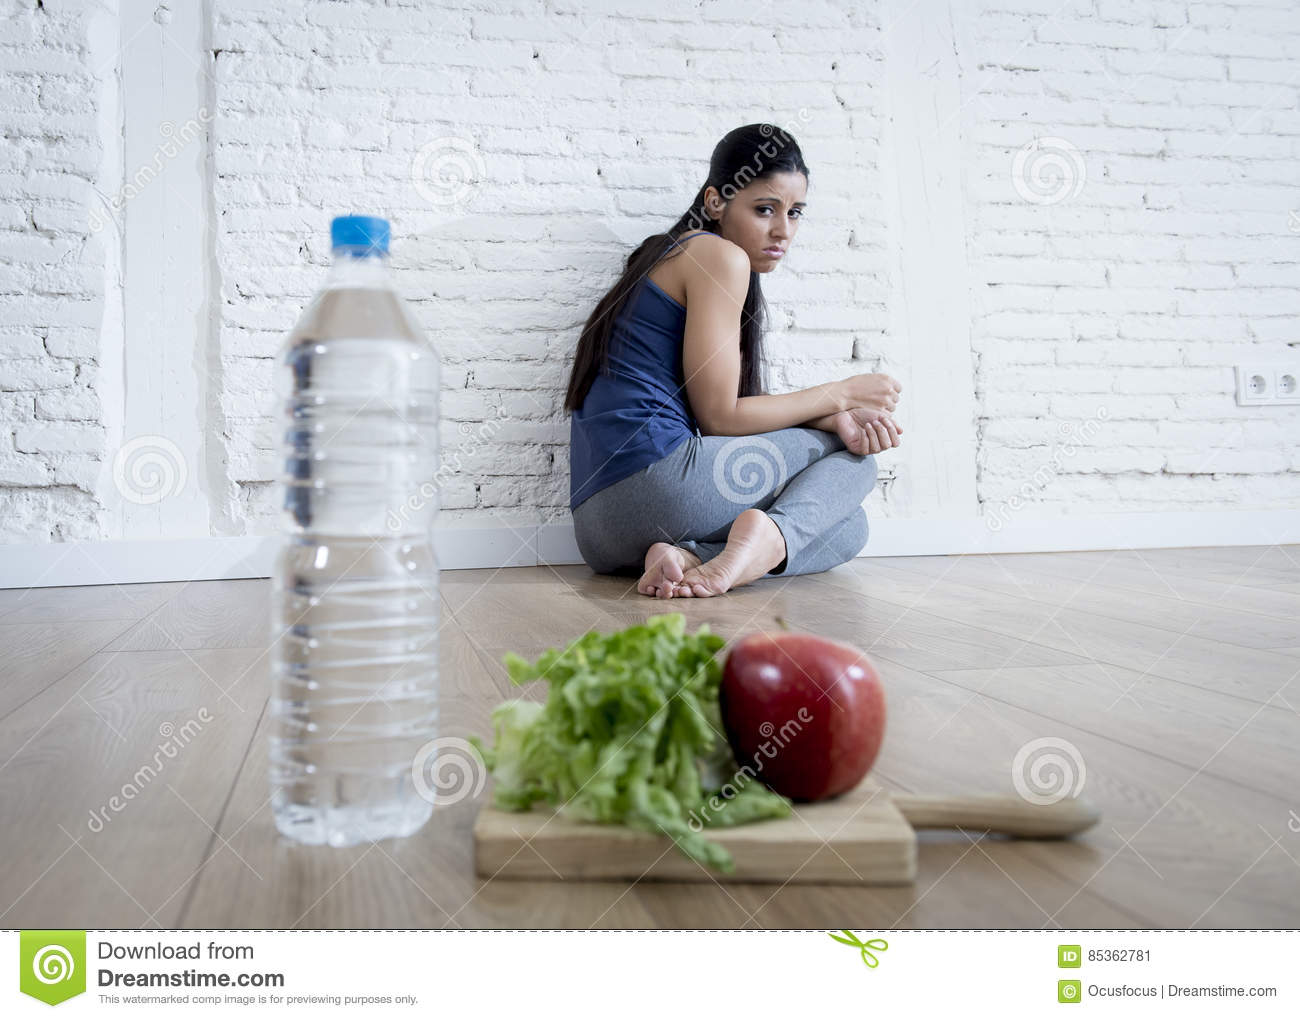 Remarkable, rather fitness and nutrition for teen girls remarkable